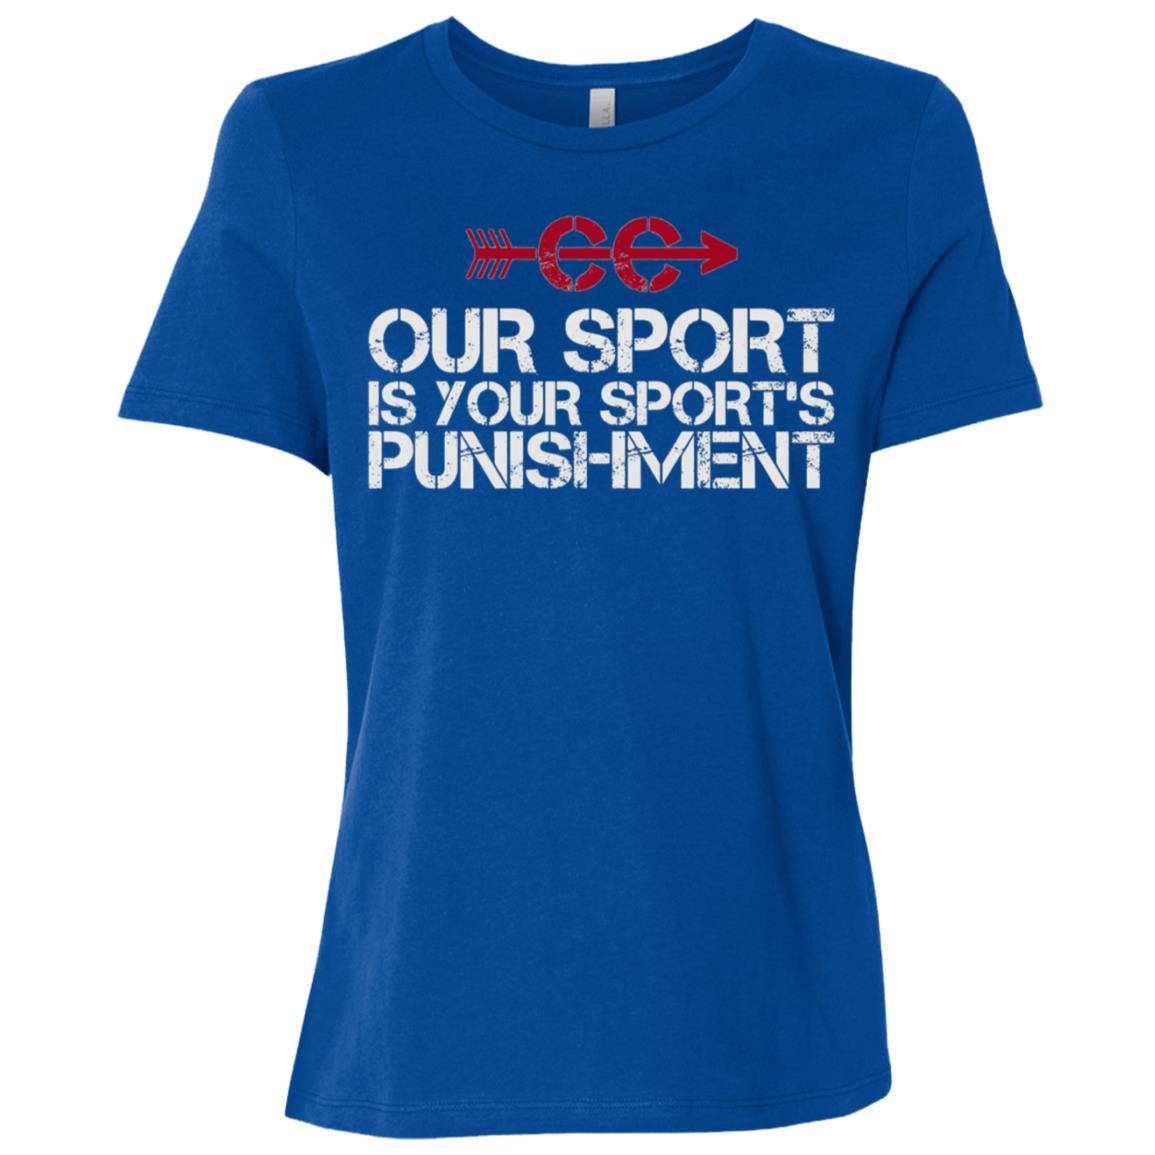 Cross Country Our Sport is your Sport's Punishment XC Run Women Short Sleeve T-Shirt